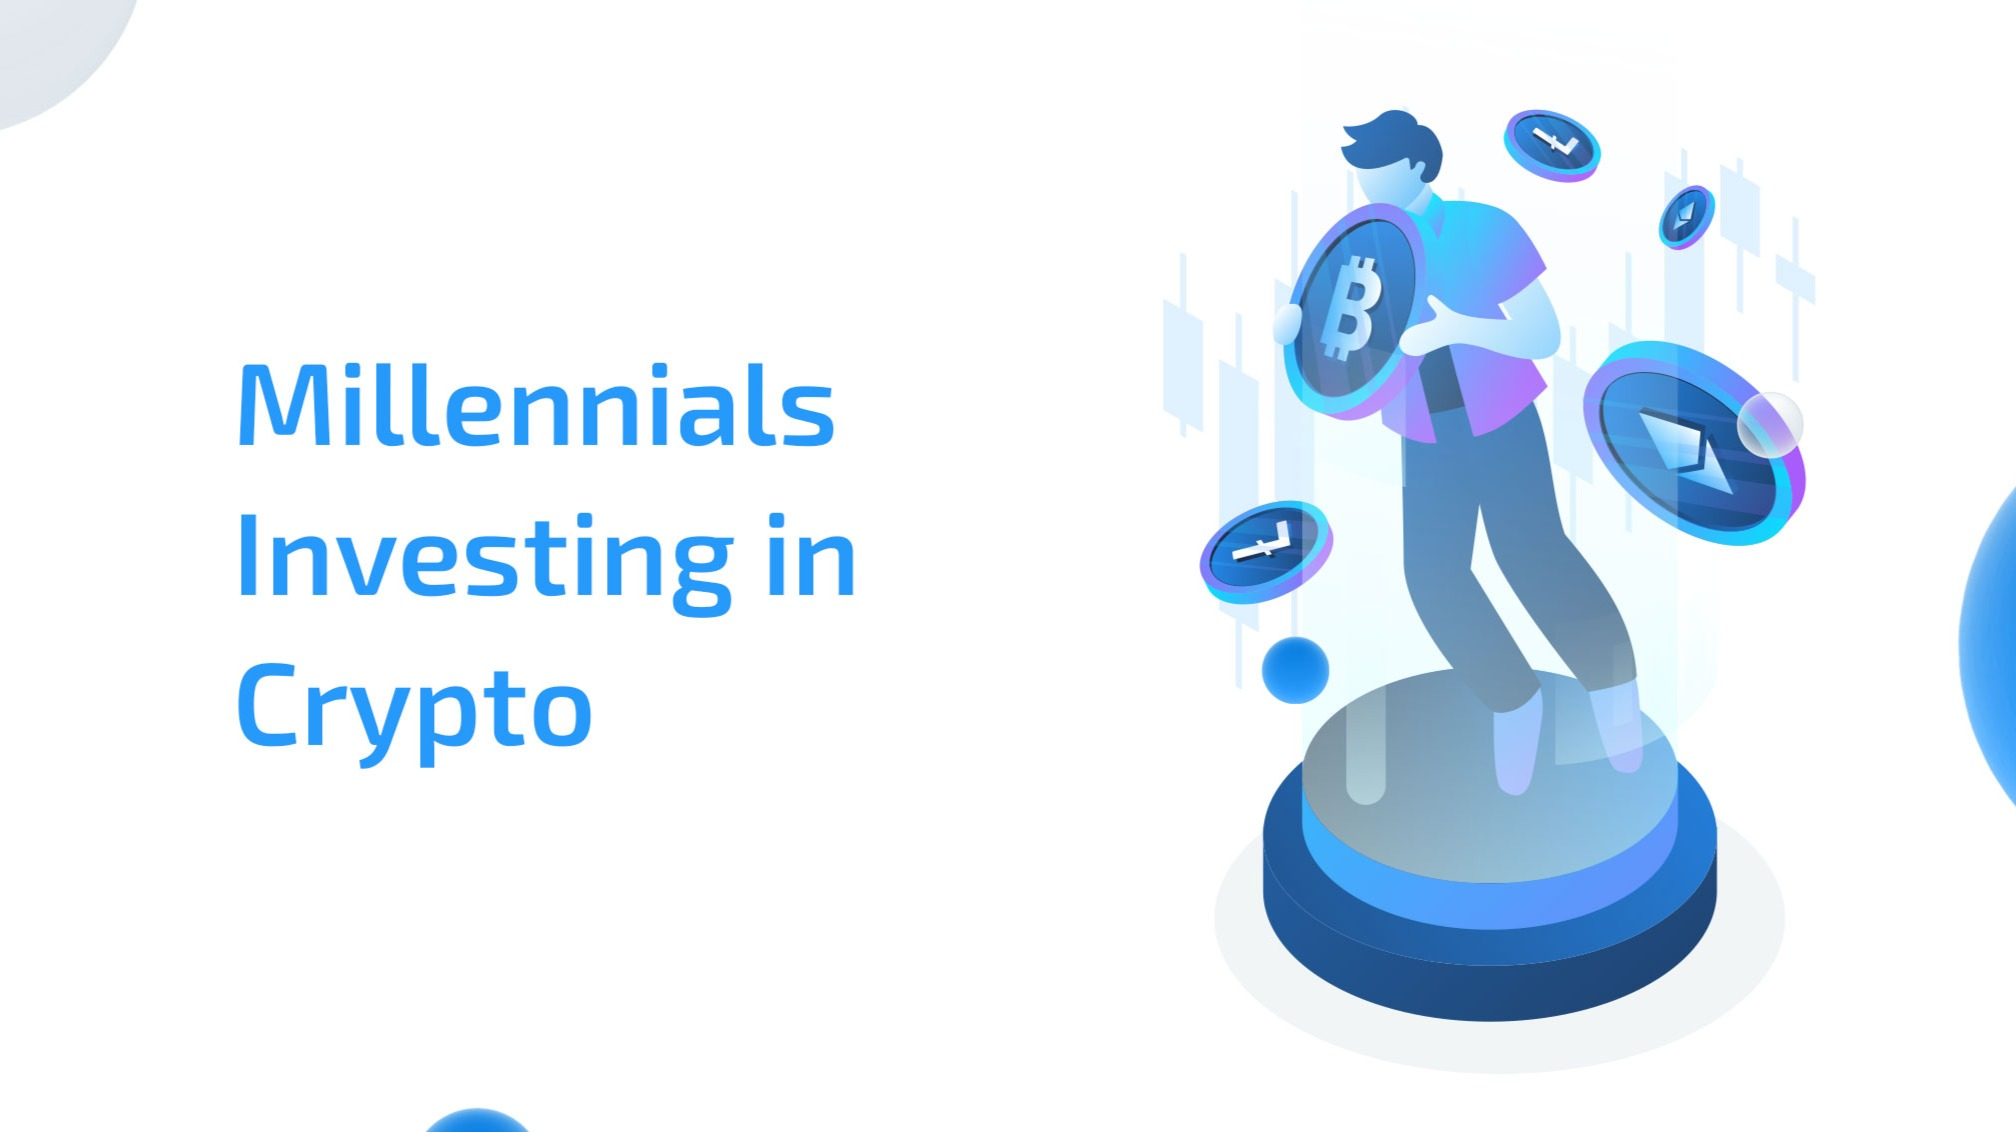 Millennials investing in crypto